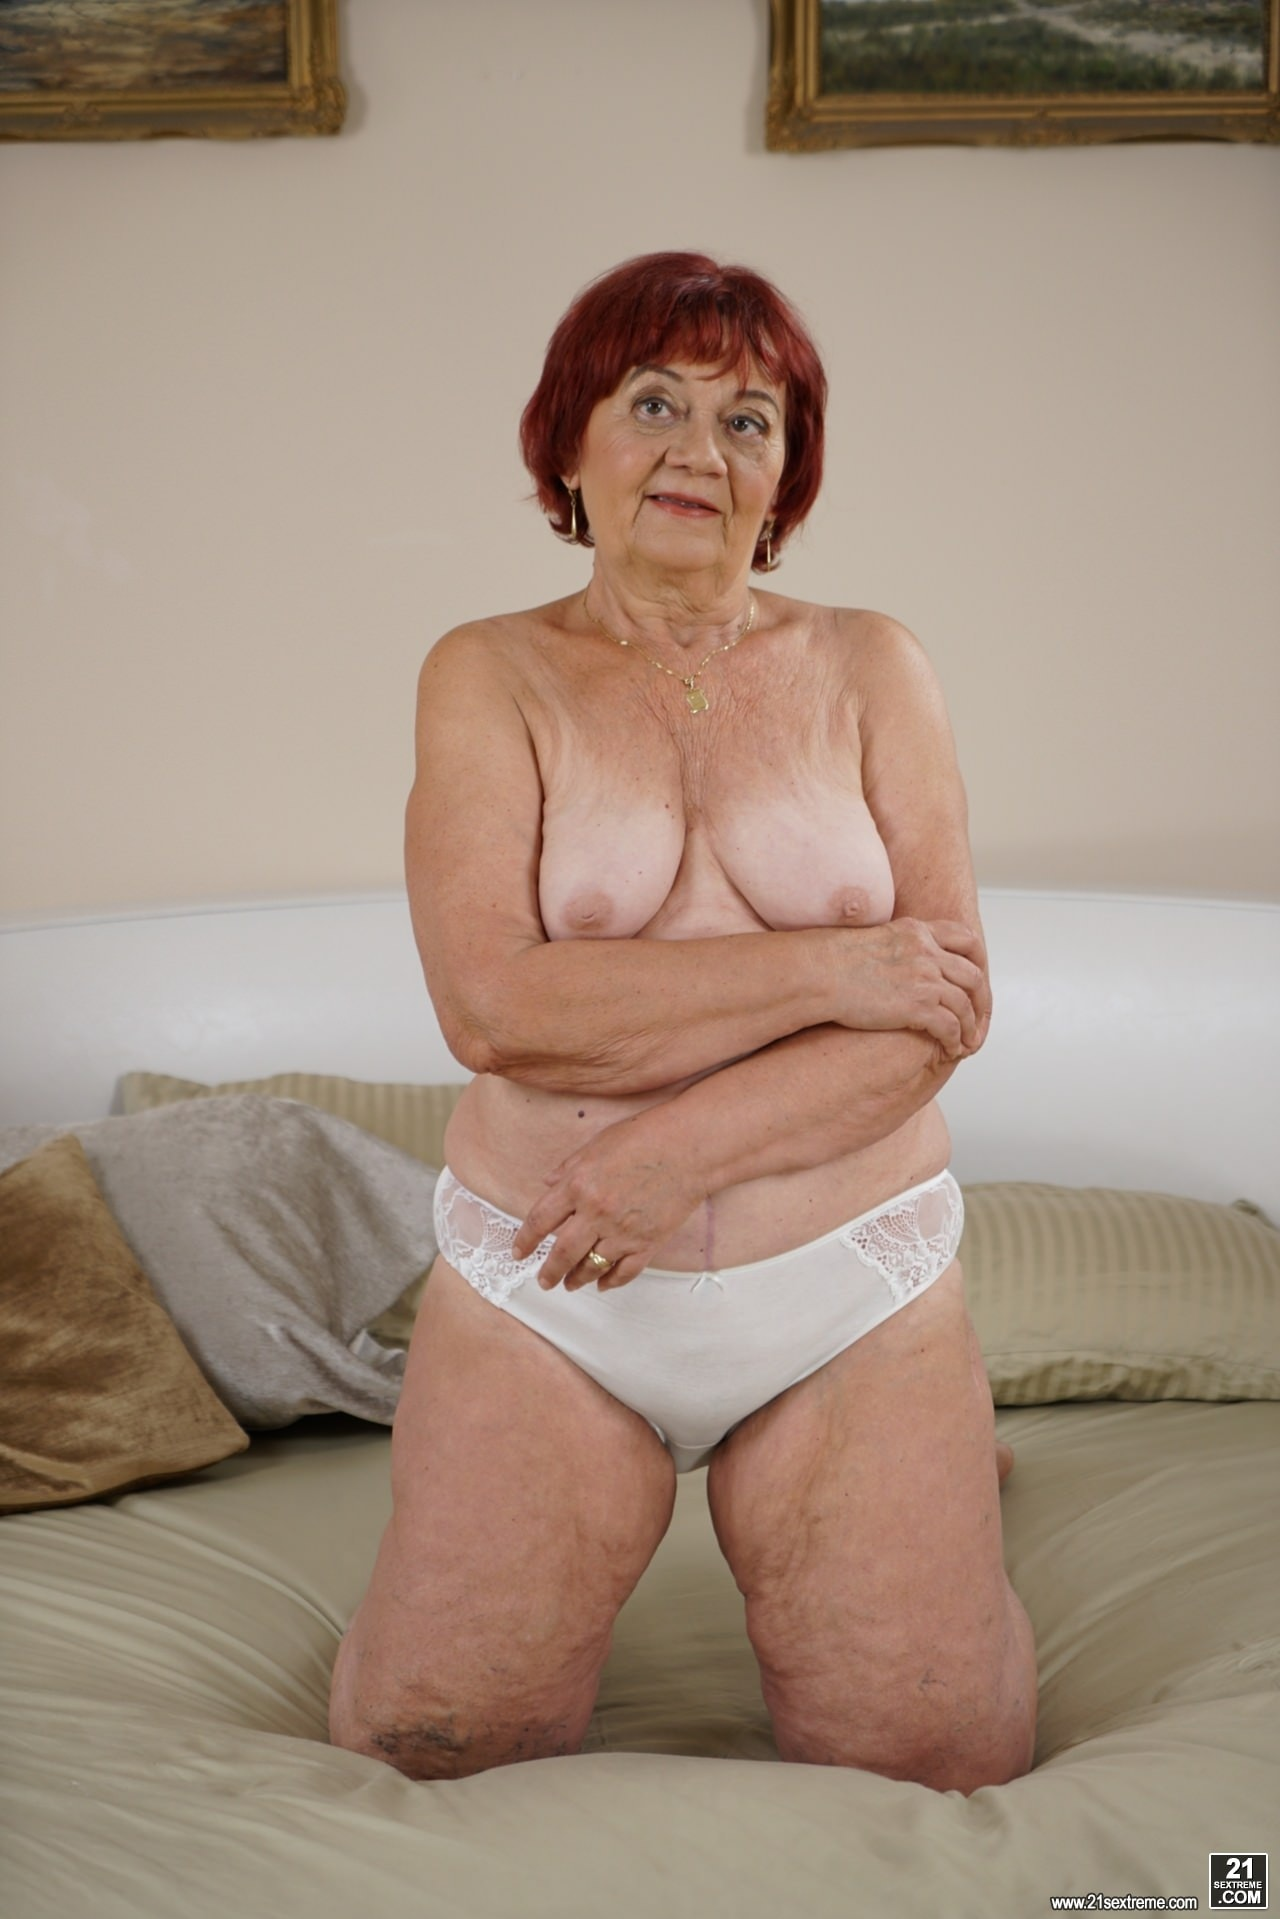 21Sextury 'Clean, Old And Sexy' starring Marsha (photo 1)